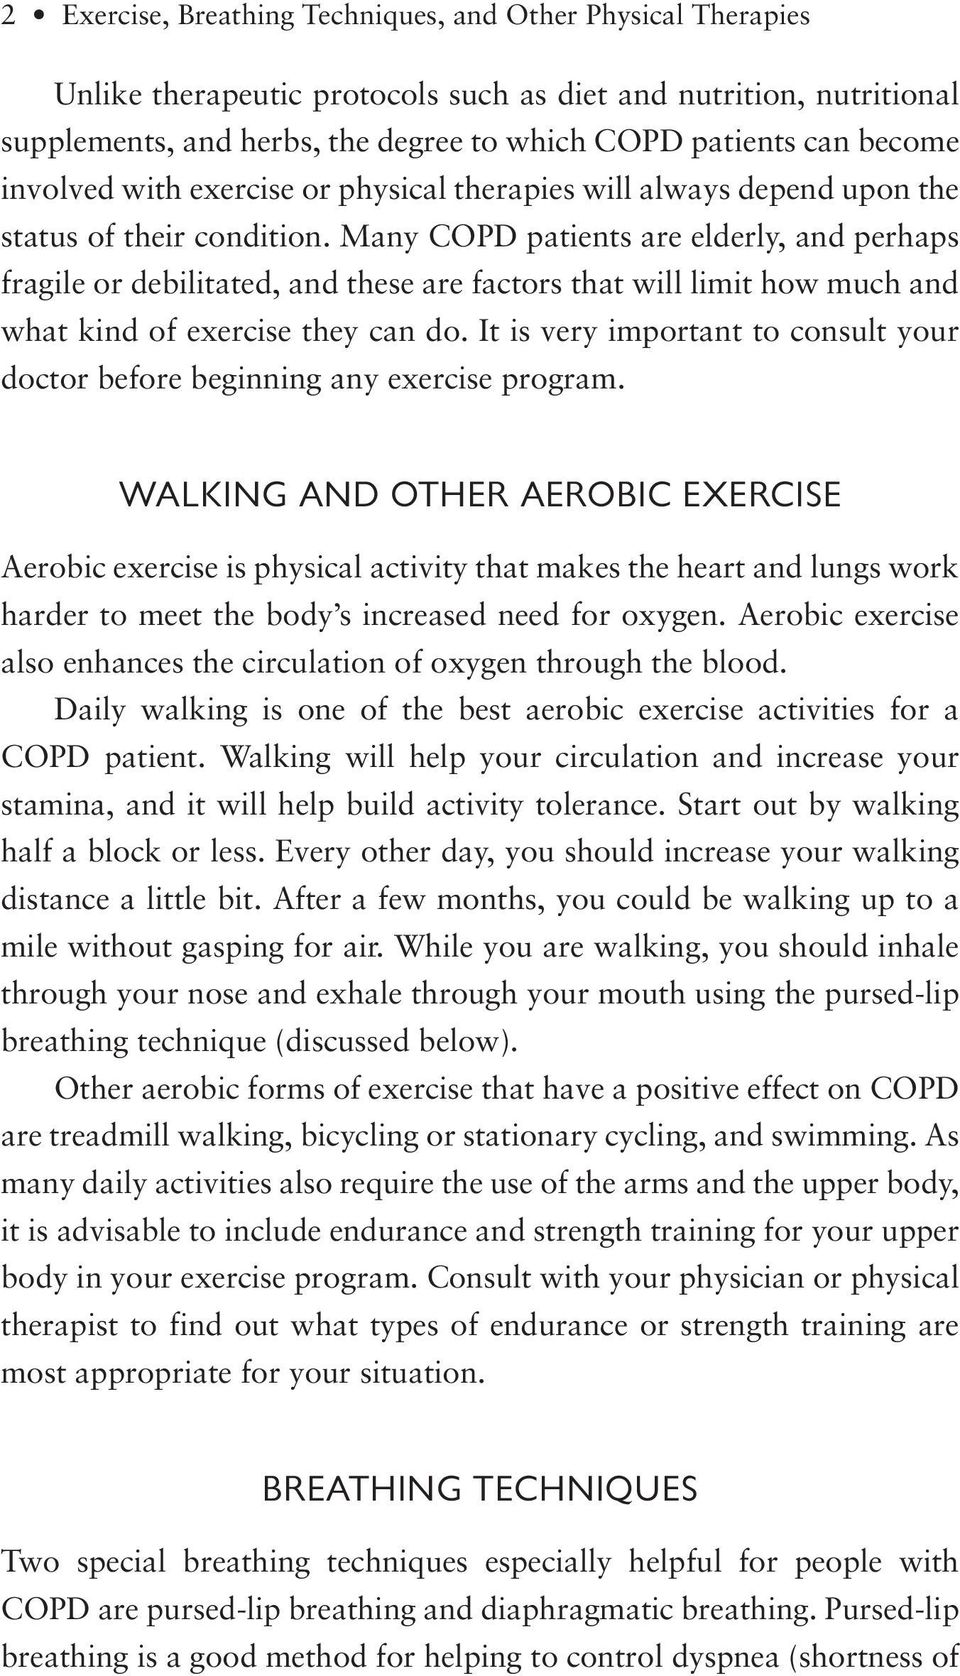 Many COPD patients are elderly, and perhaps fragile or debilitated, and these are factors that will limit how much and what kind of exercise they can do.